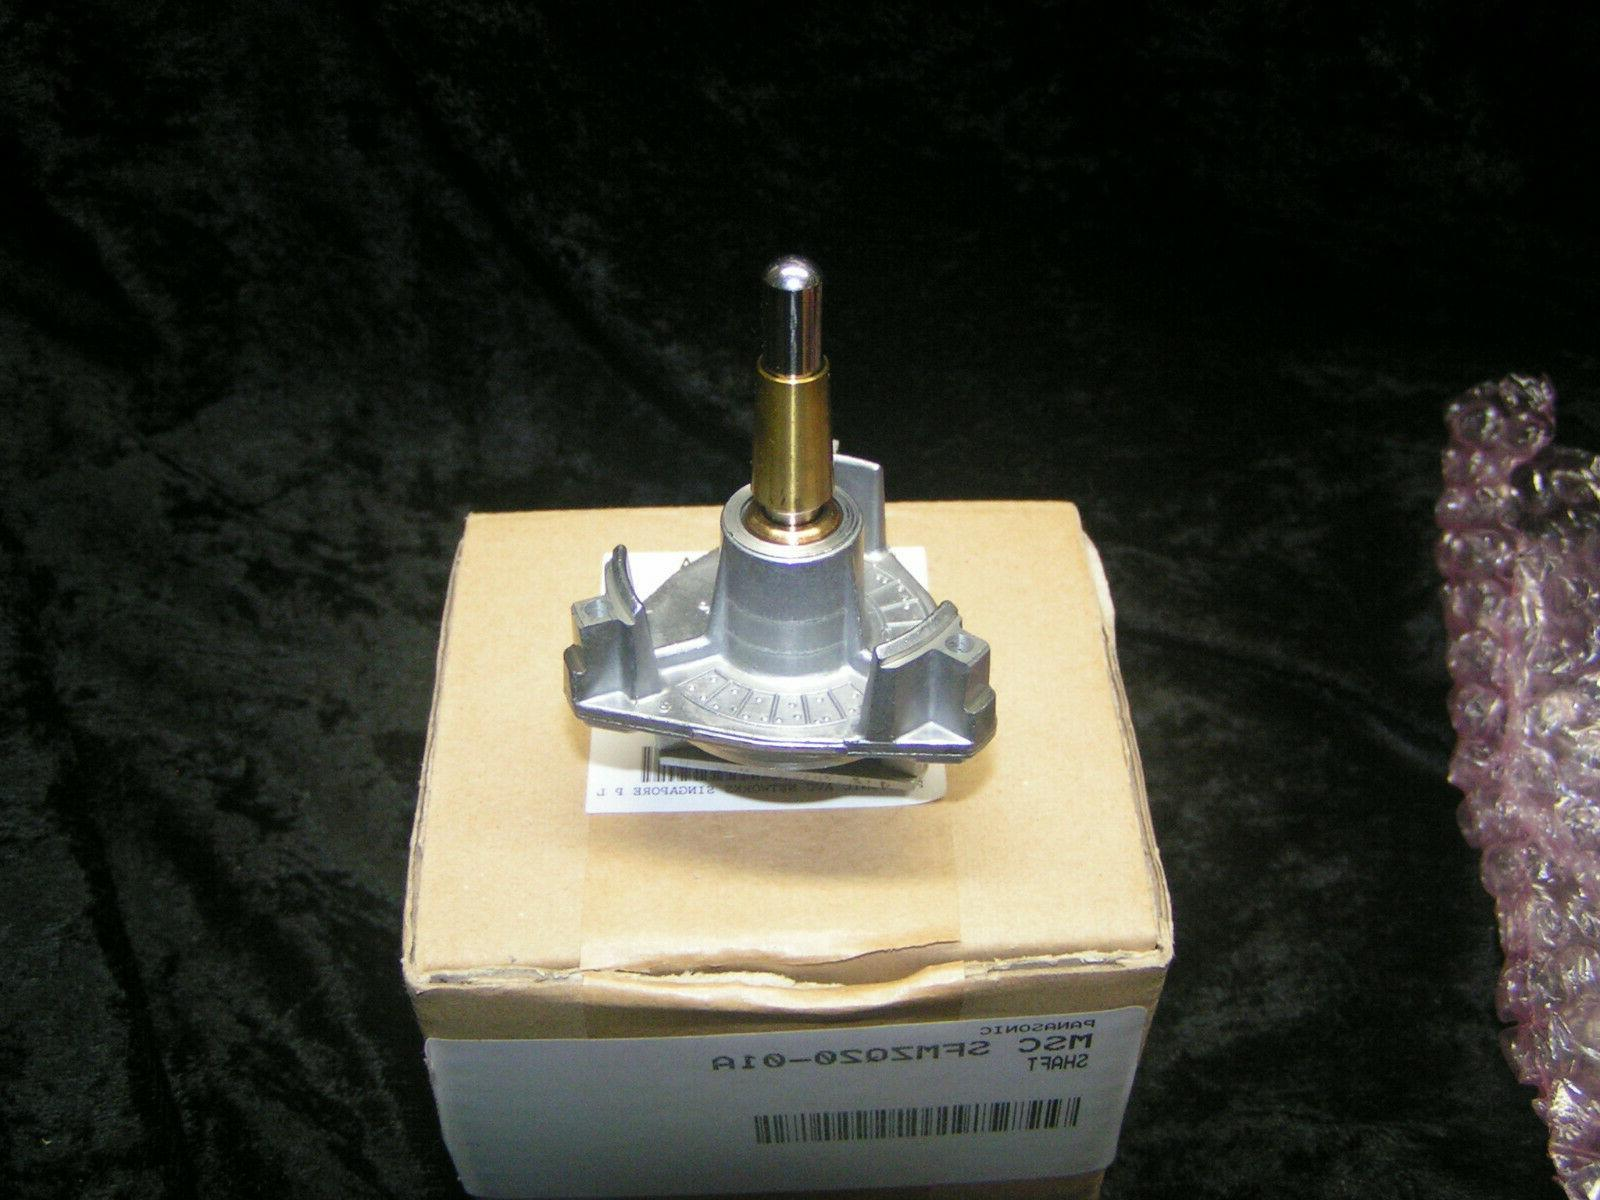 NEW! Technics Assembly 1200 1210 MK2 M3D MK5 Spindle Parts